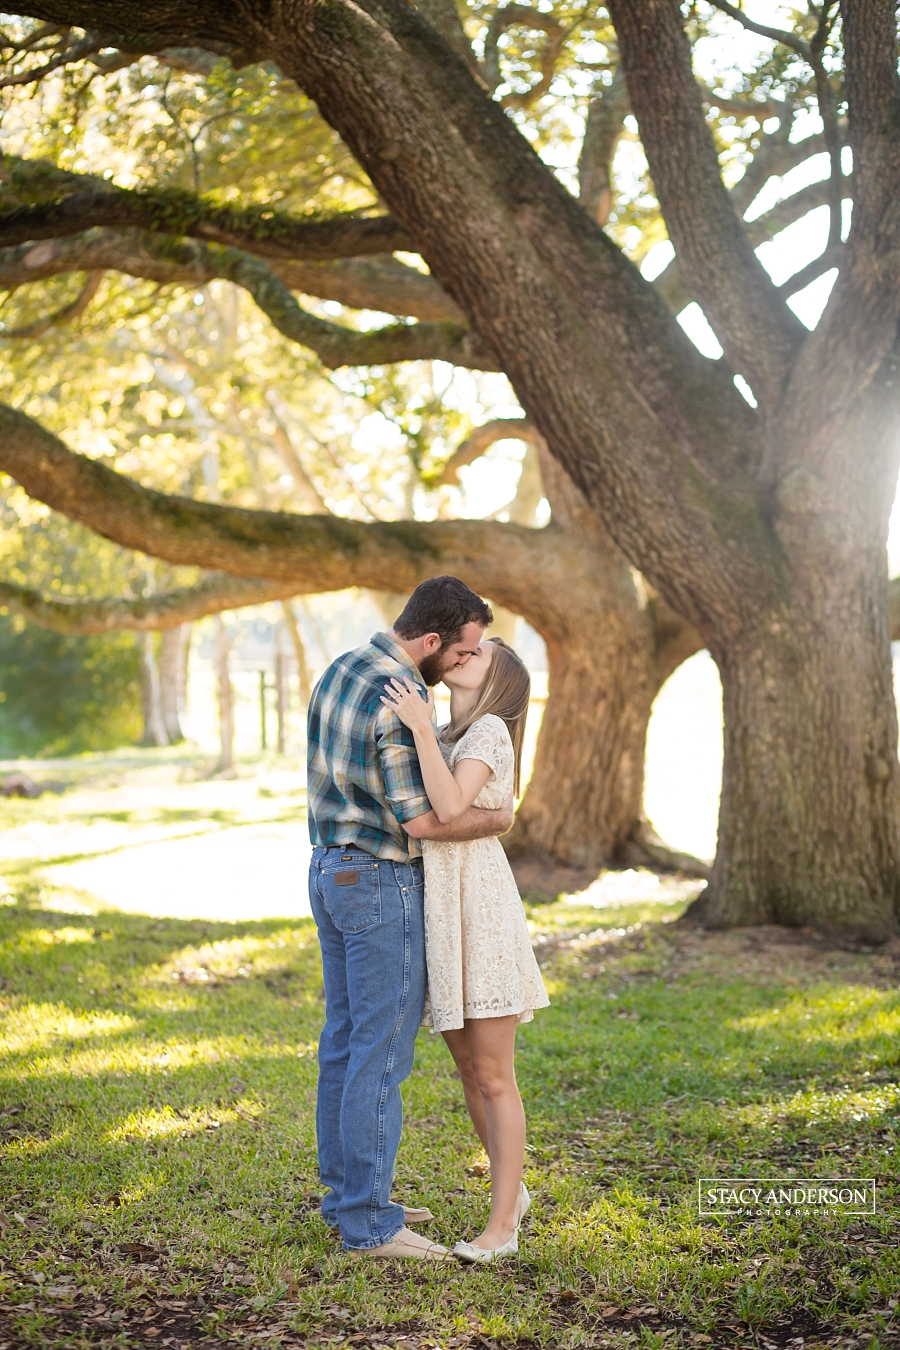 stacy-anderson-photography-alvin-wedding-photographer_0009